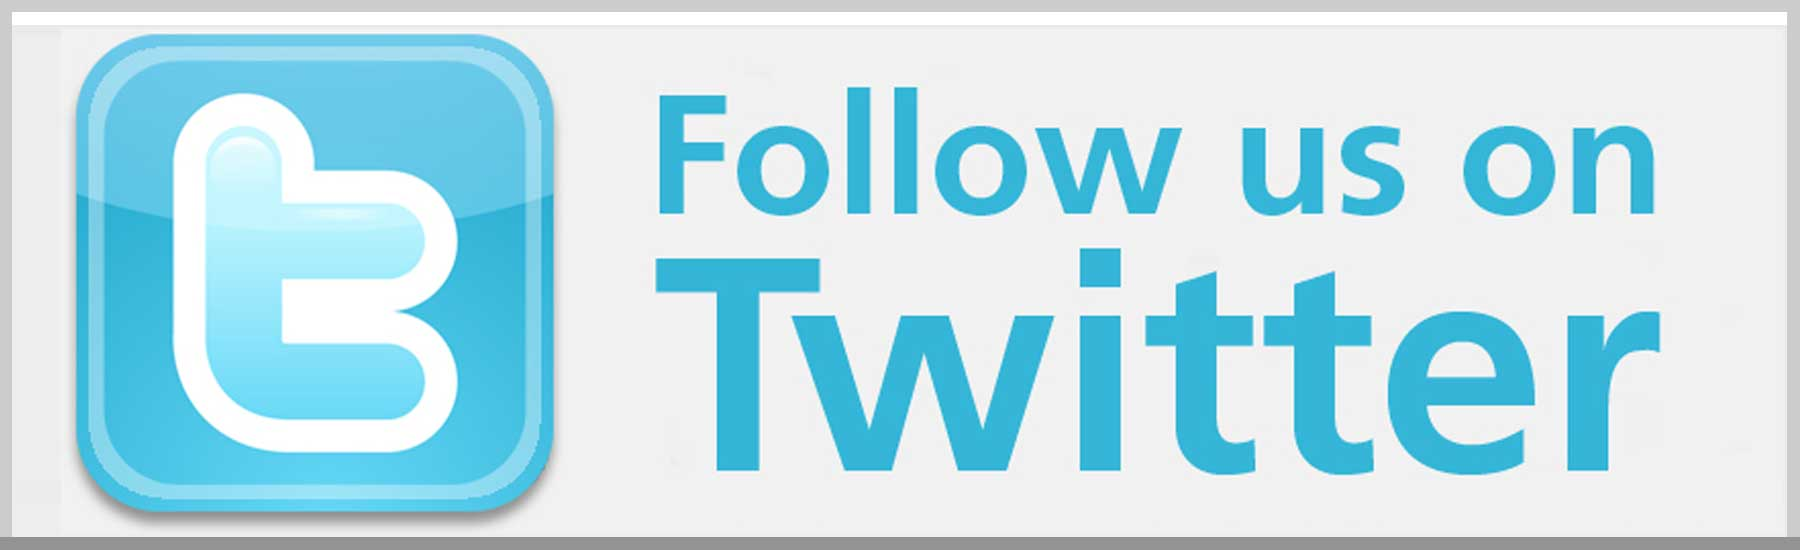 Follow @LEADelaware1 on Twitter!